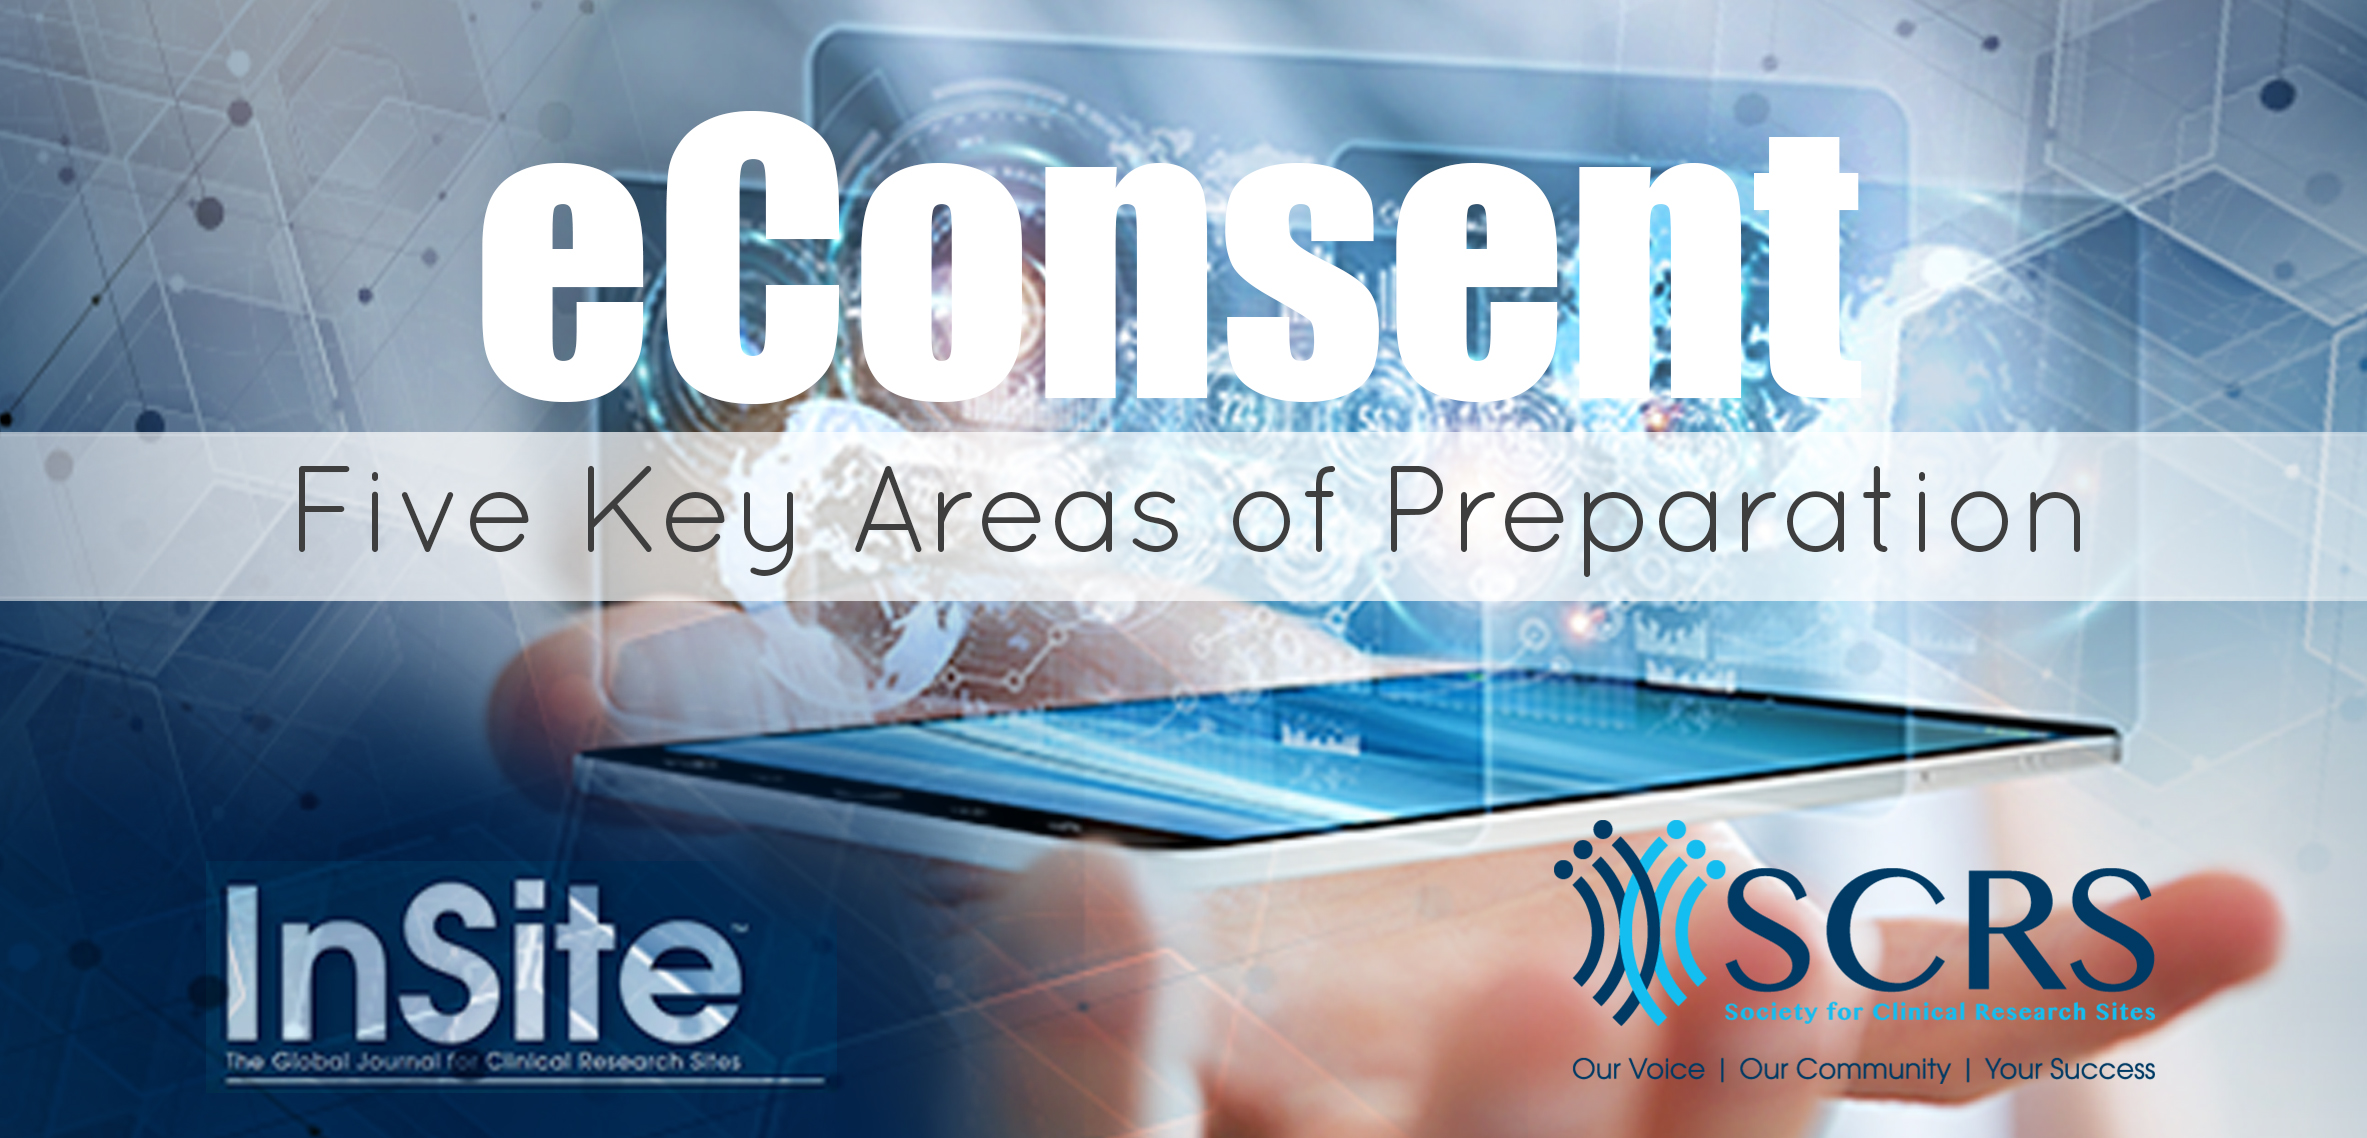 eConsent: 5 Key Areas of Preparation